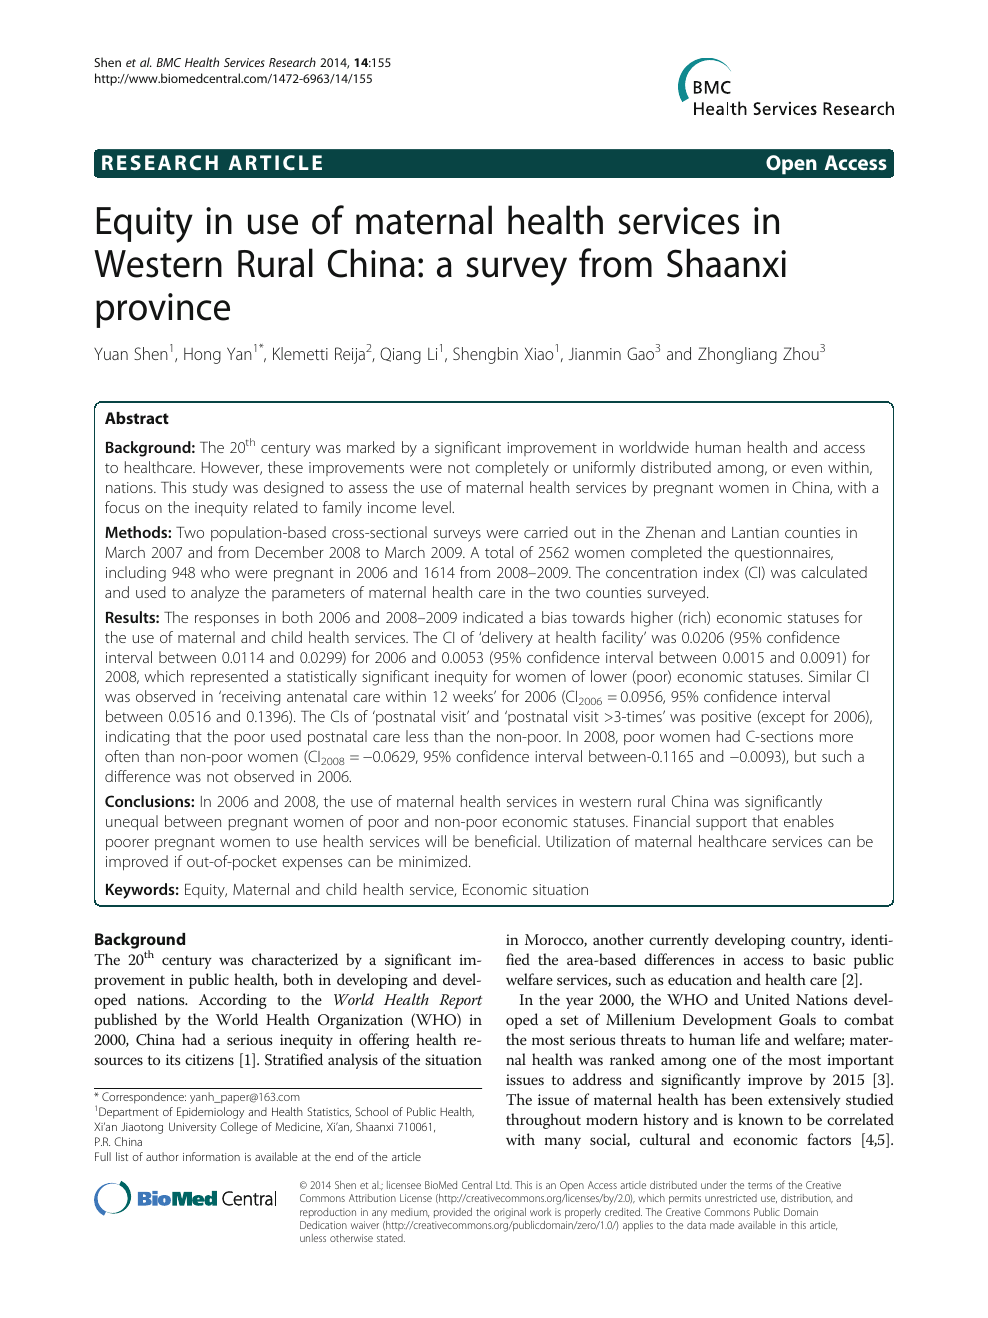 Equity in use of maternal health services in Western Rural